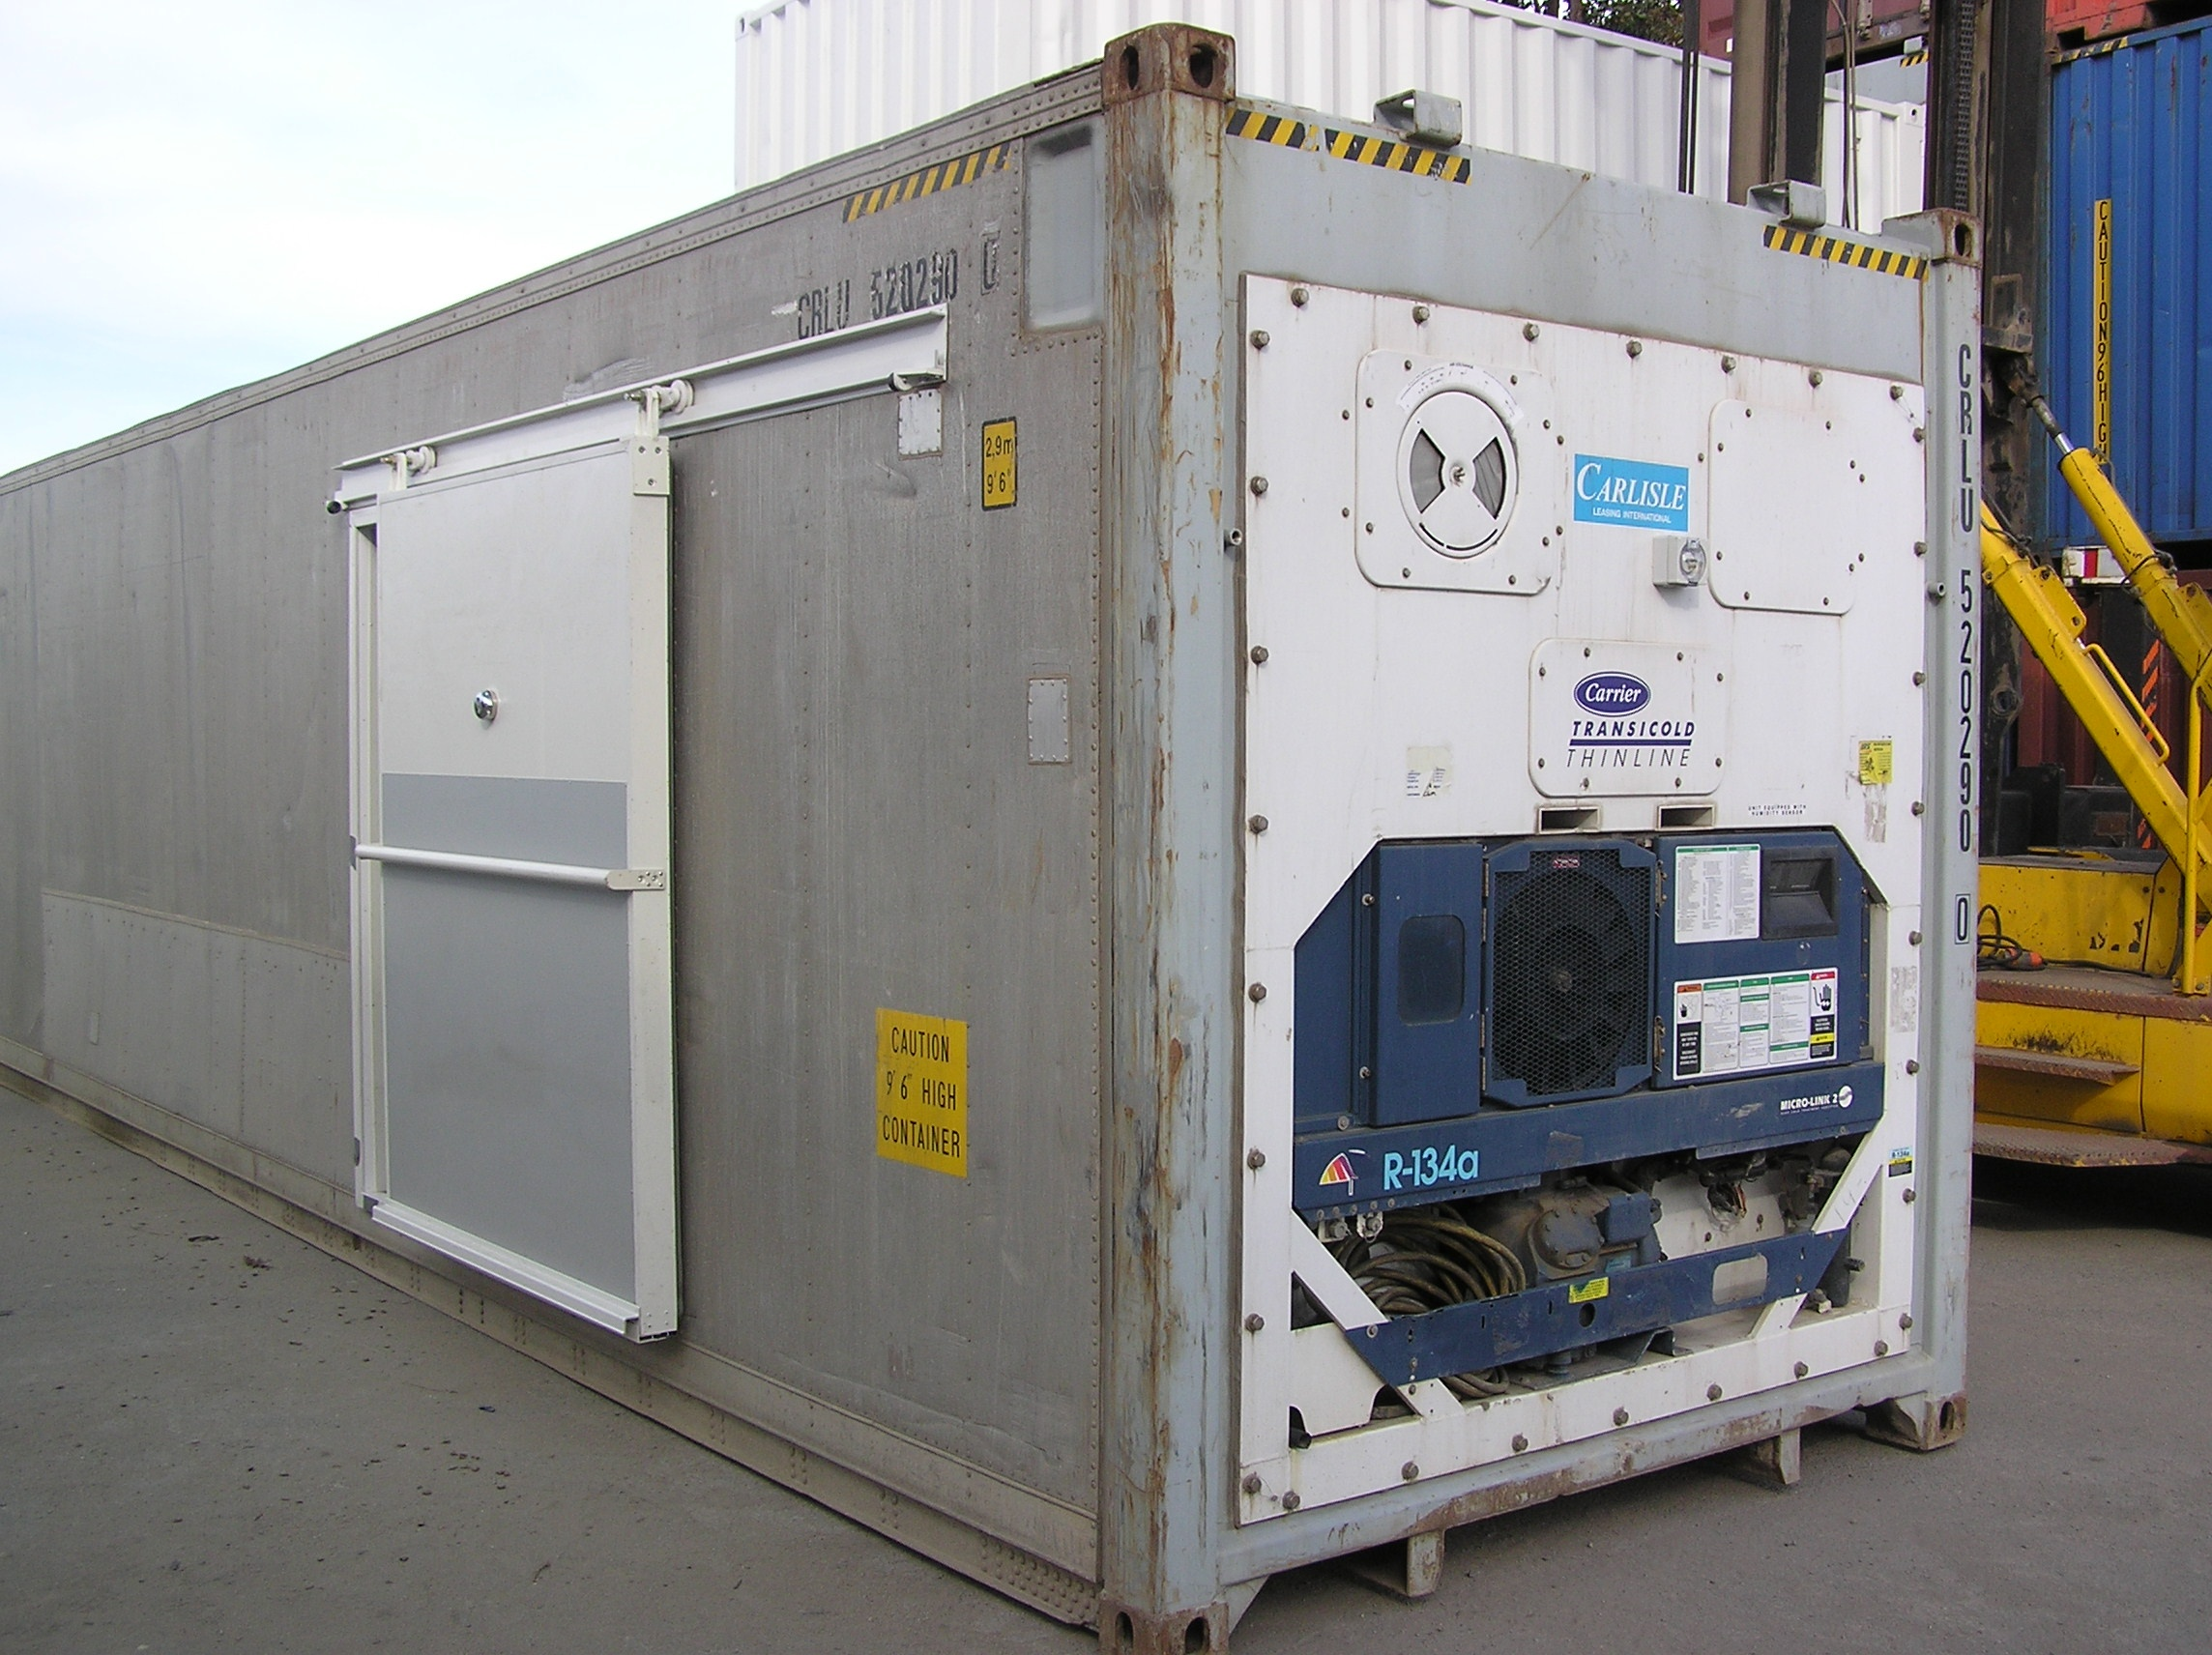 40' Container modified to provide refrigerated temperature controlled environment for food storage and transport. Sliding side access doors.